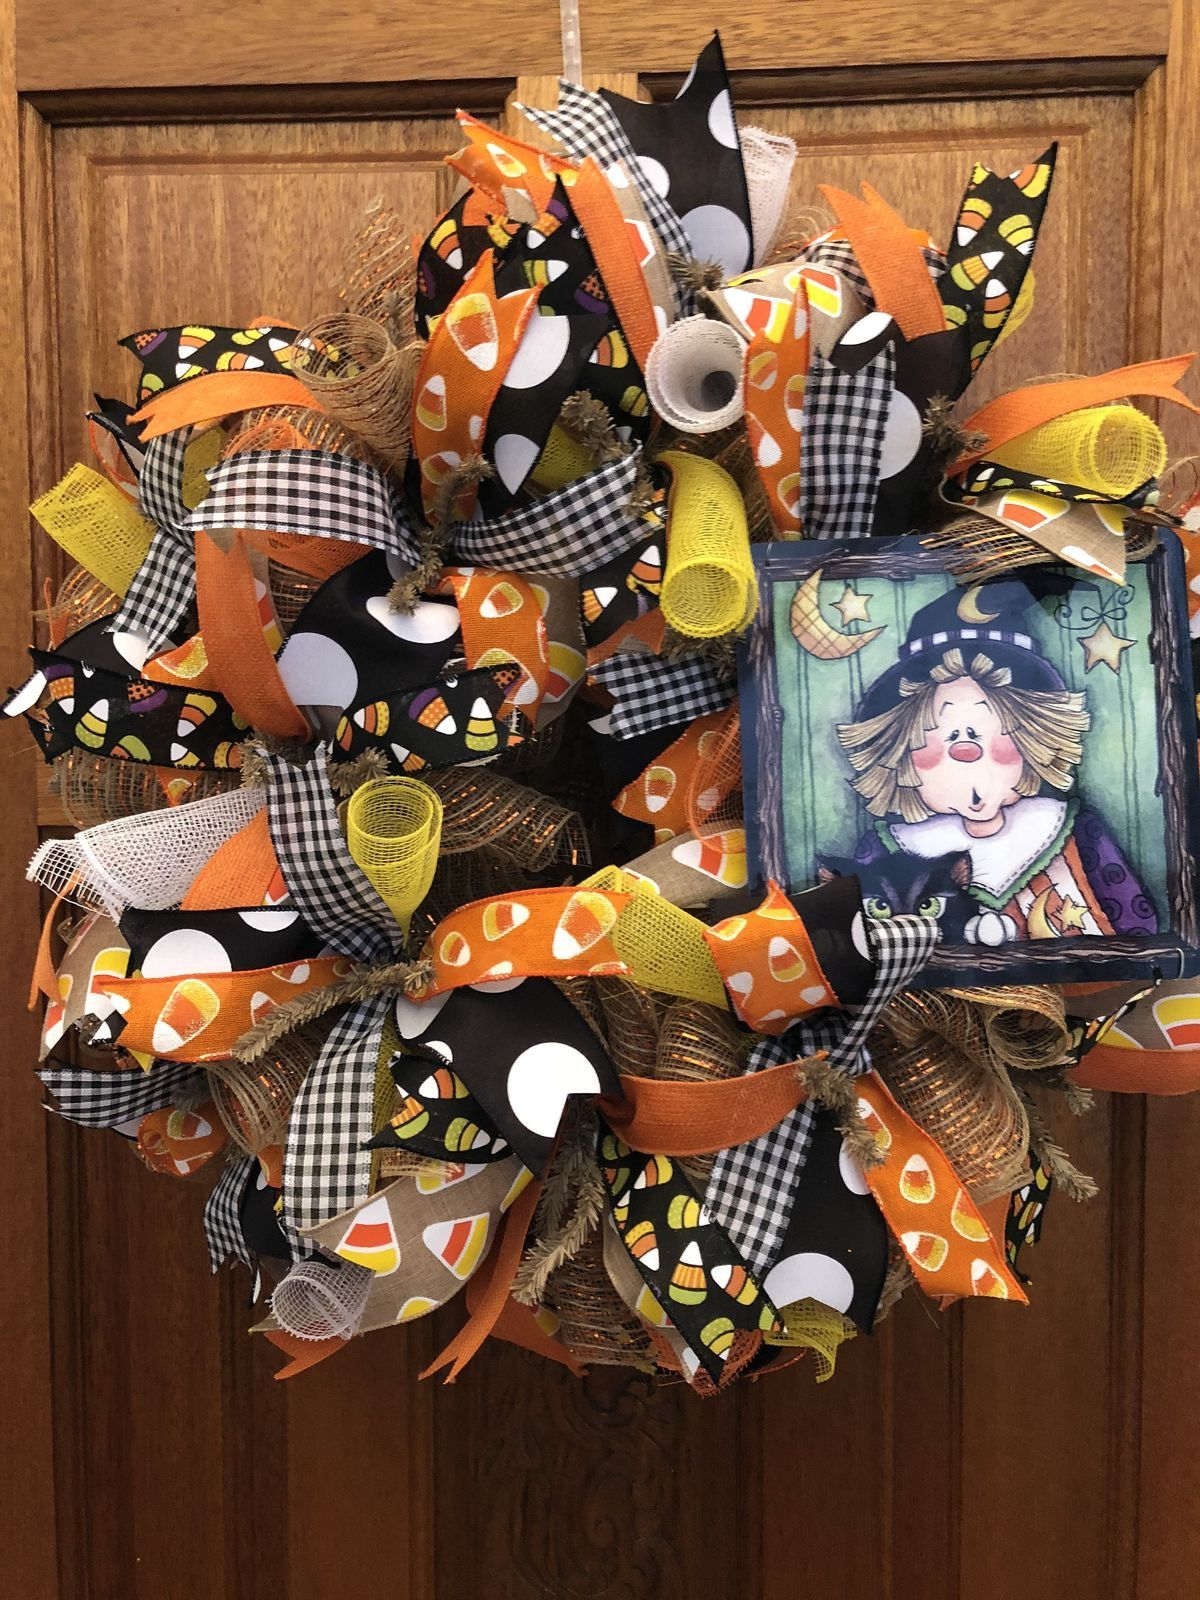 Pin by Debi Hill on Crafts Halloween deco mesh